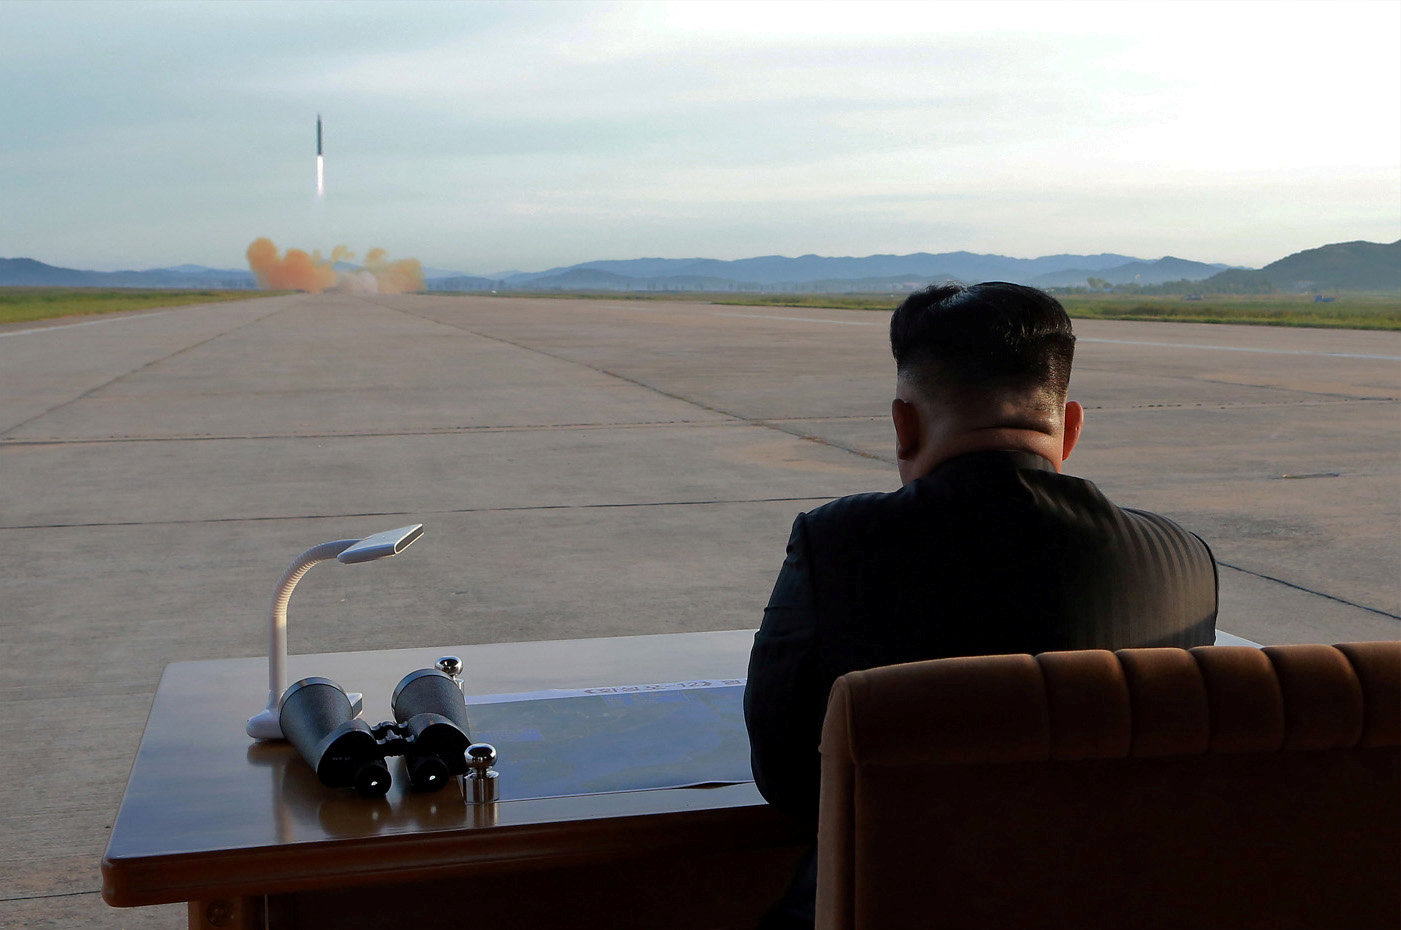 North Korean leader Kim Jong Un watches the launch of a Hwasong-12 missile in this undated photo released by North Korea's Korean Central News Agency, Sept. 16, 2017.